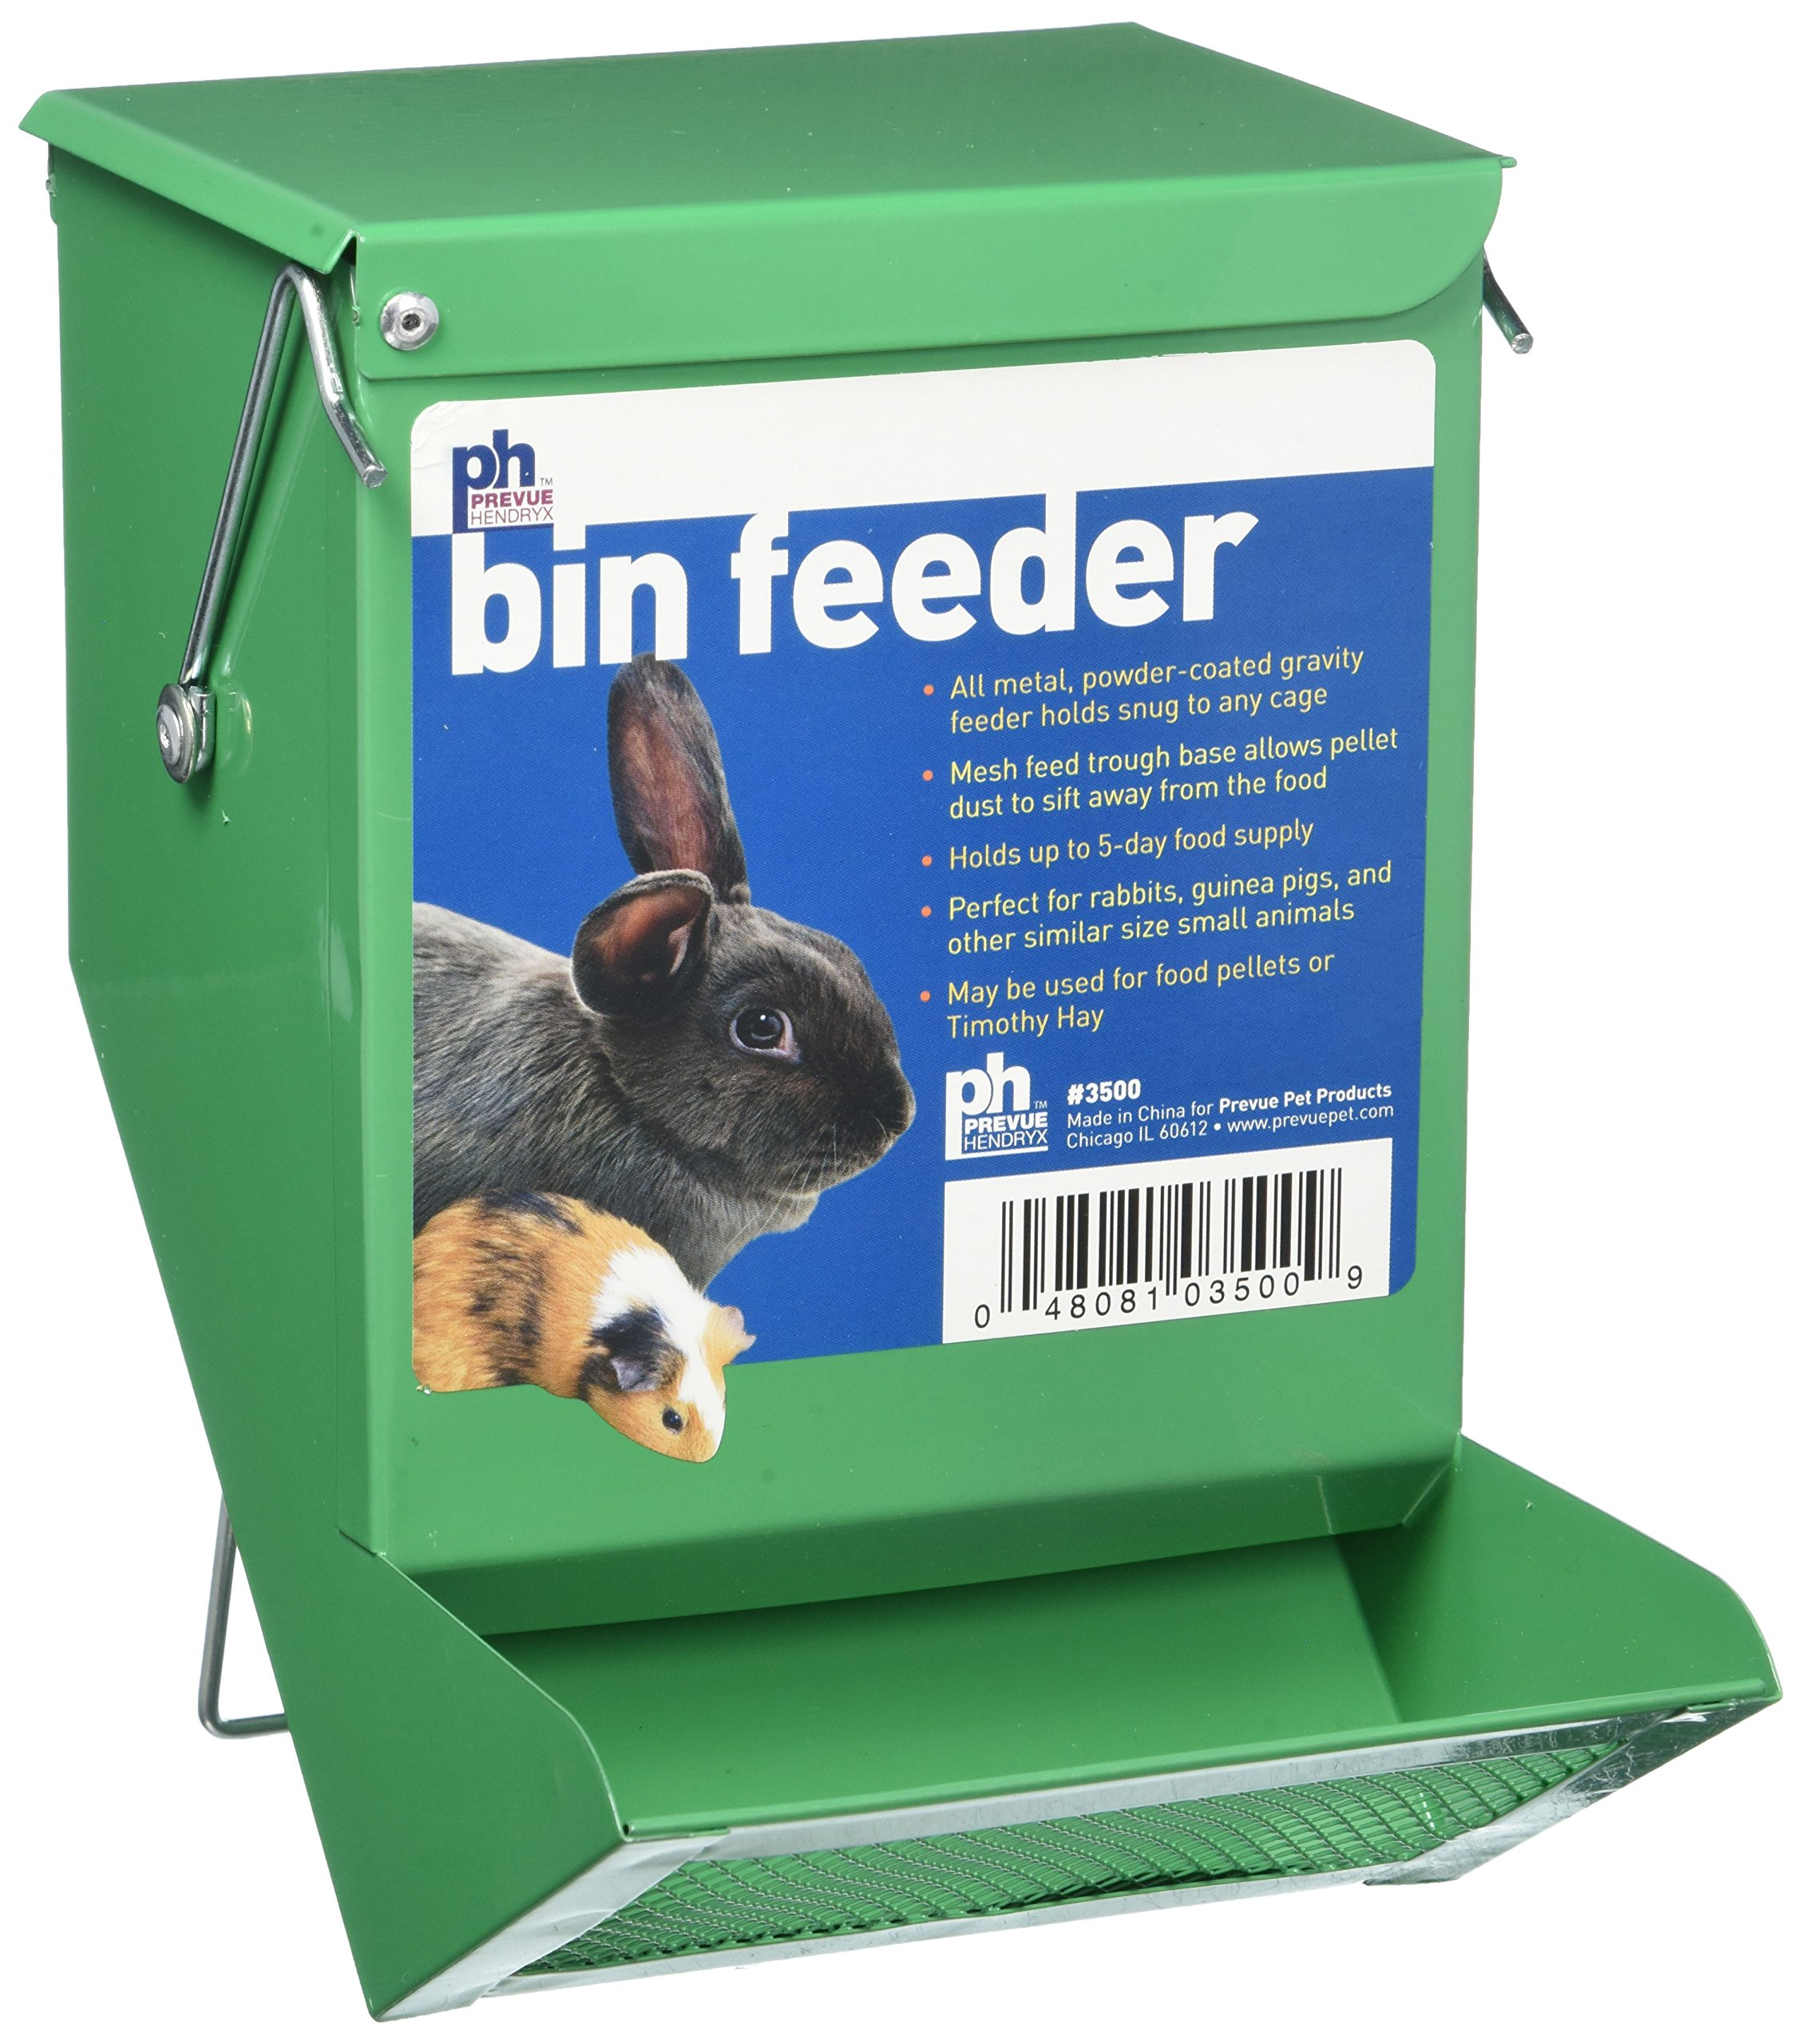 on orders diner feeder pet product zone shipping programmable over dog overstock free designer supplies